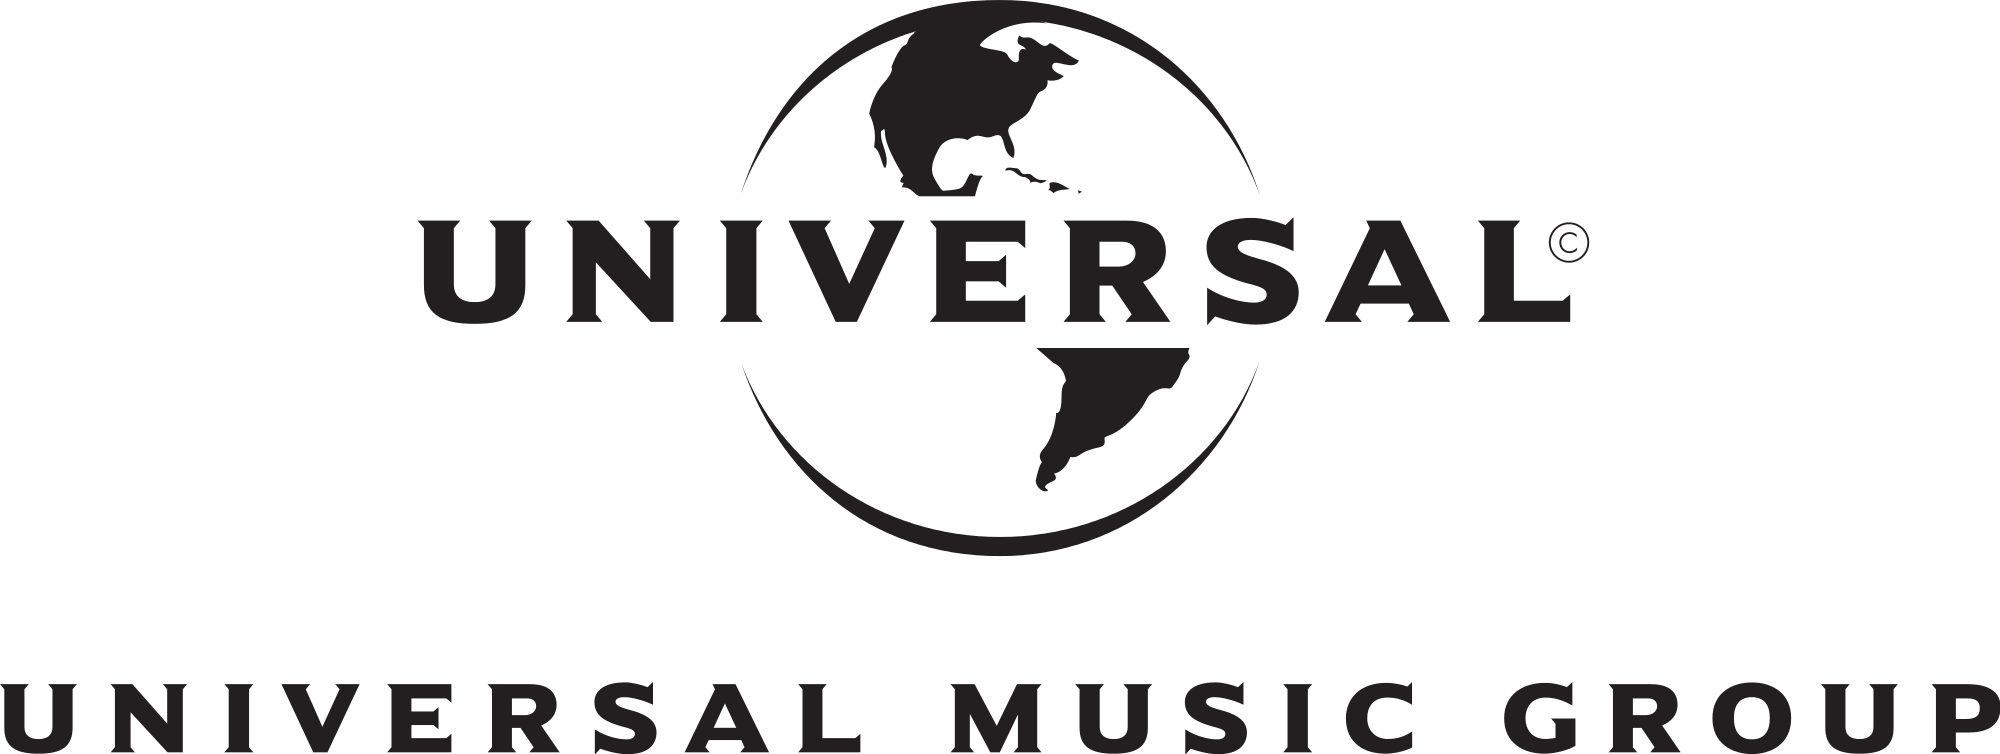 Universal Music Group - Complete Event